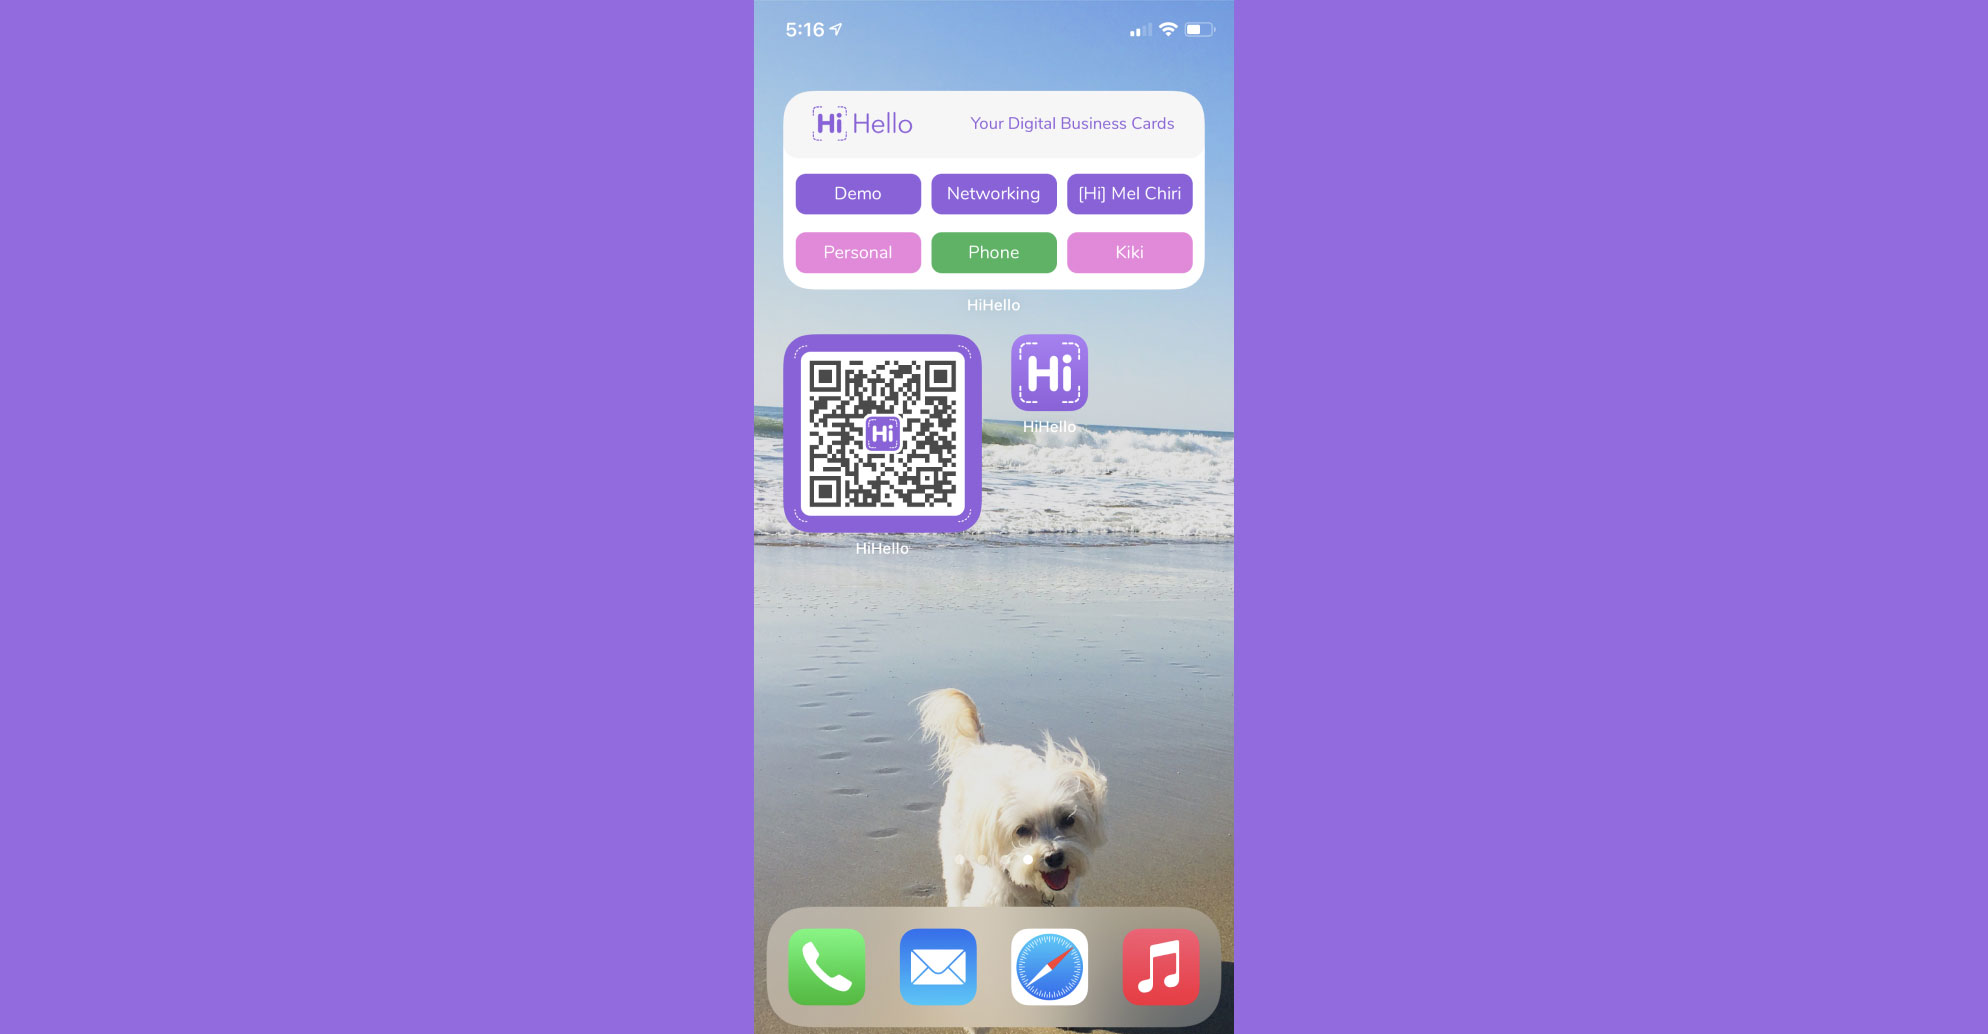 Start sharing your business card with your scannable QR code widget.